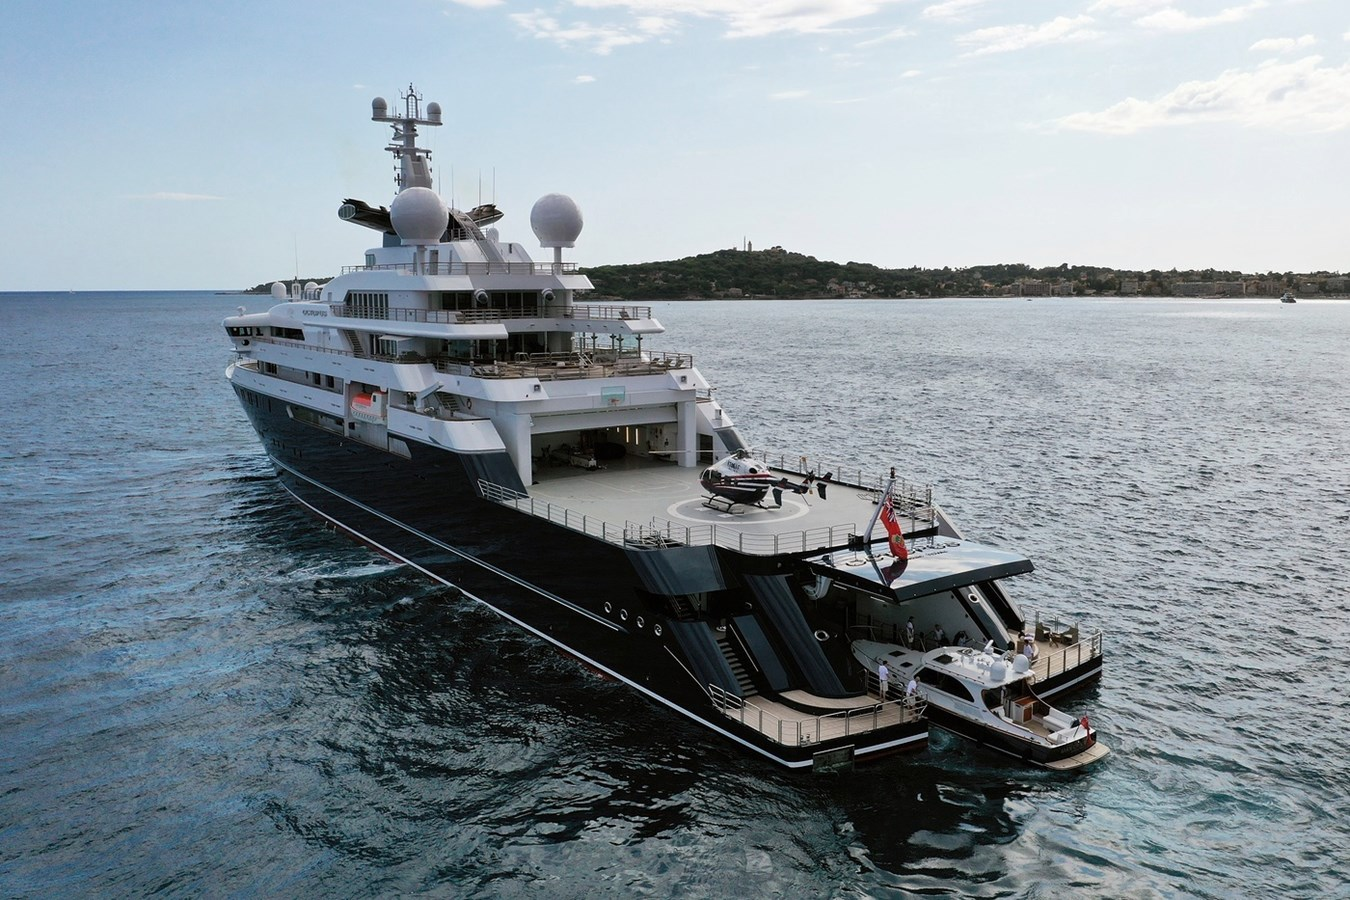 OCTOPUS_00006307_vb1574275 2003 LURSSEN Twin Screw Displacement Yacht Motor Yacht 2817166